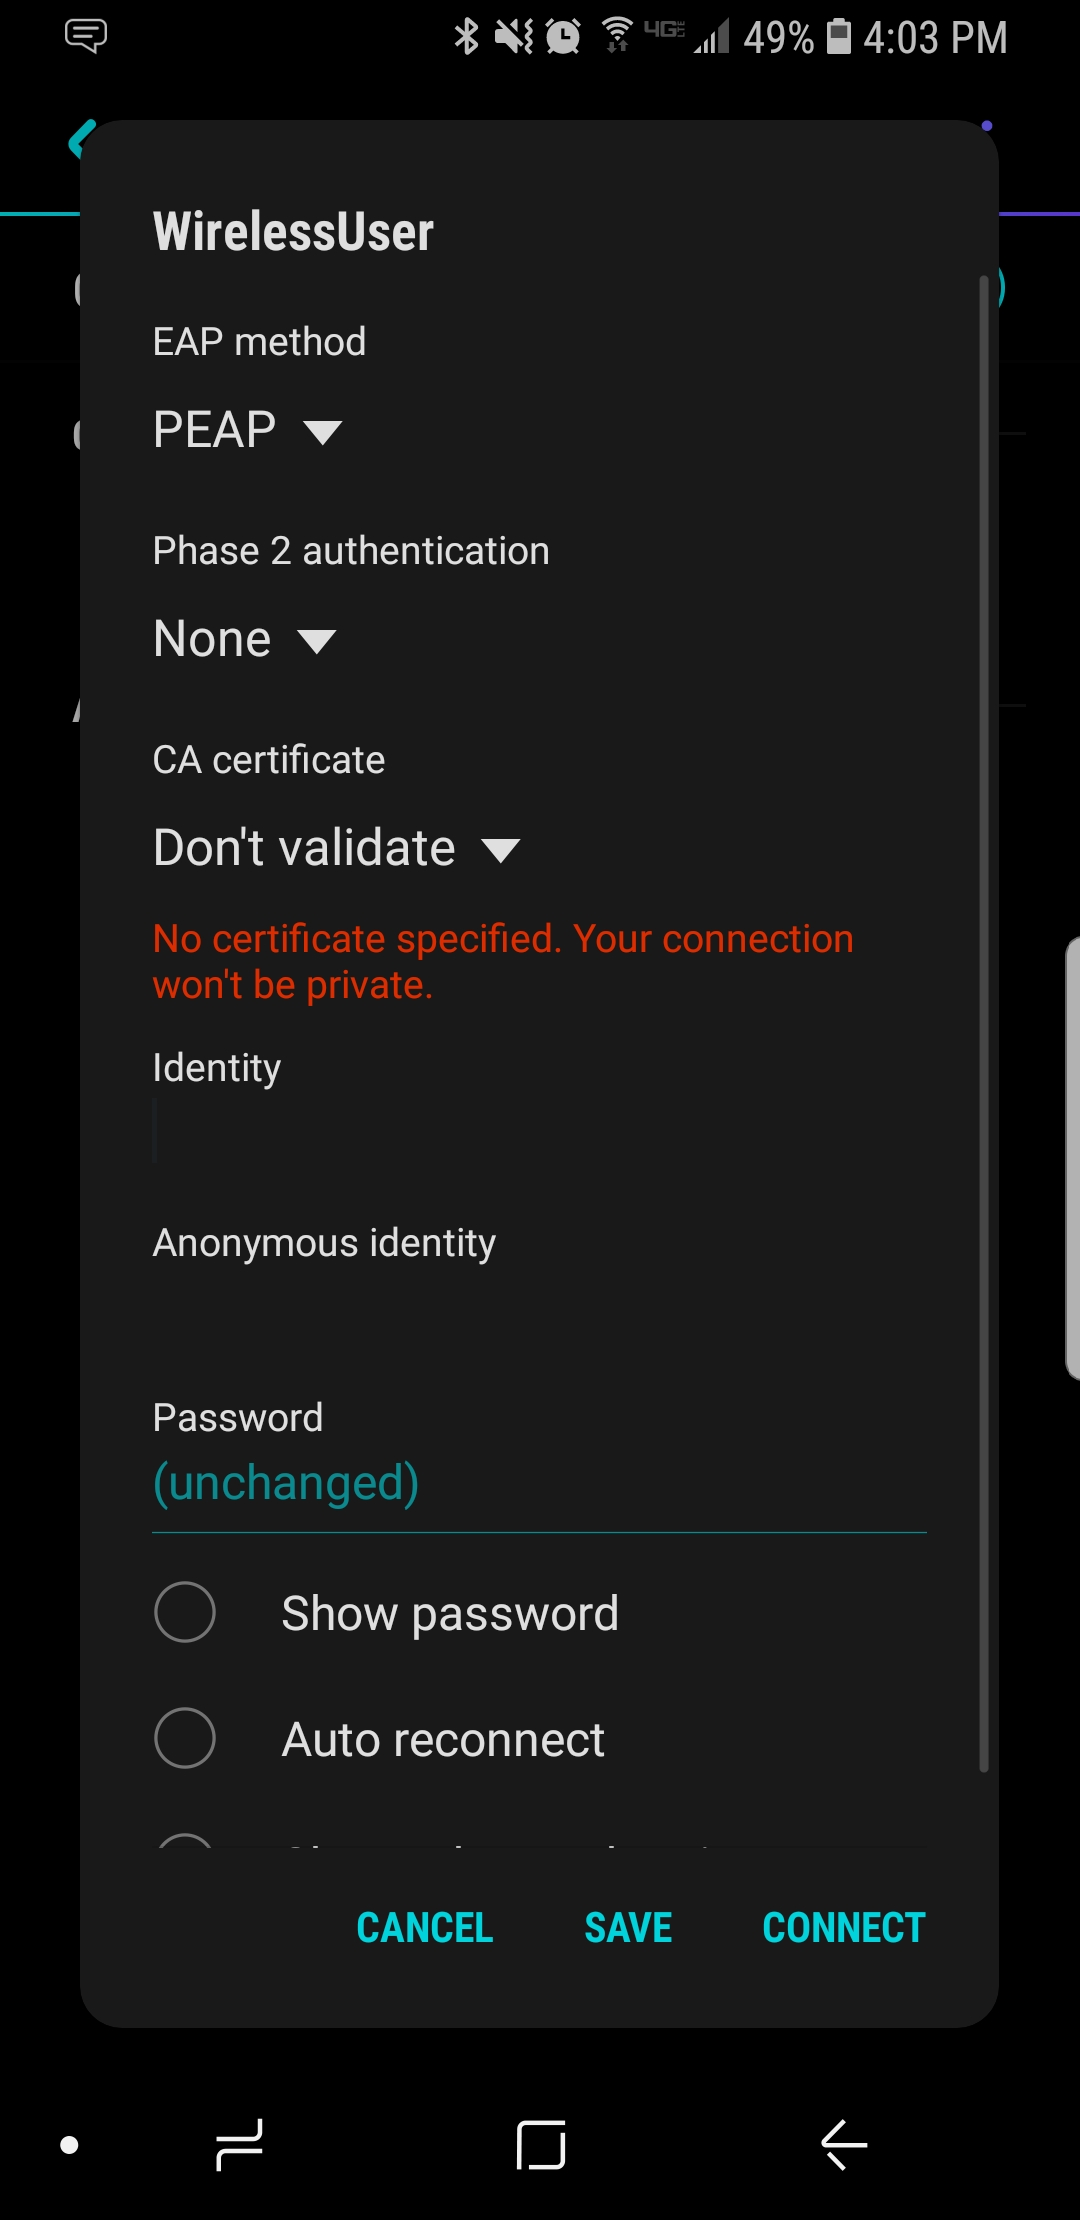 Validating identity wifi booster